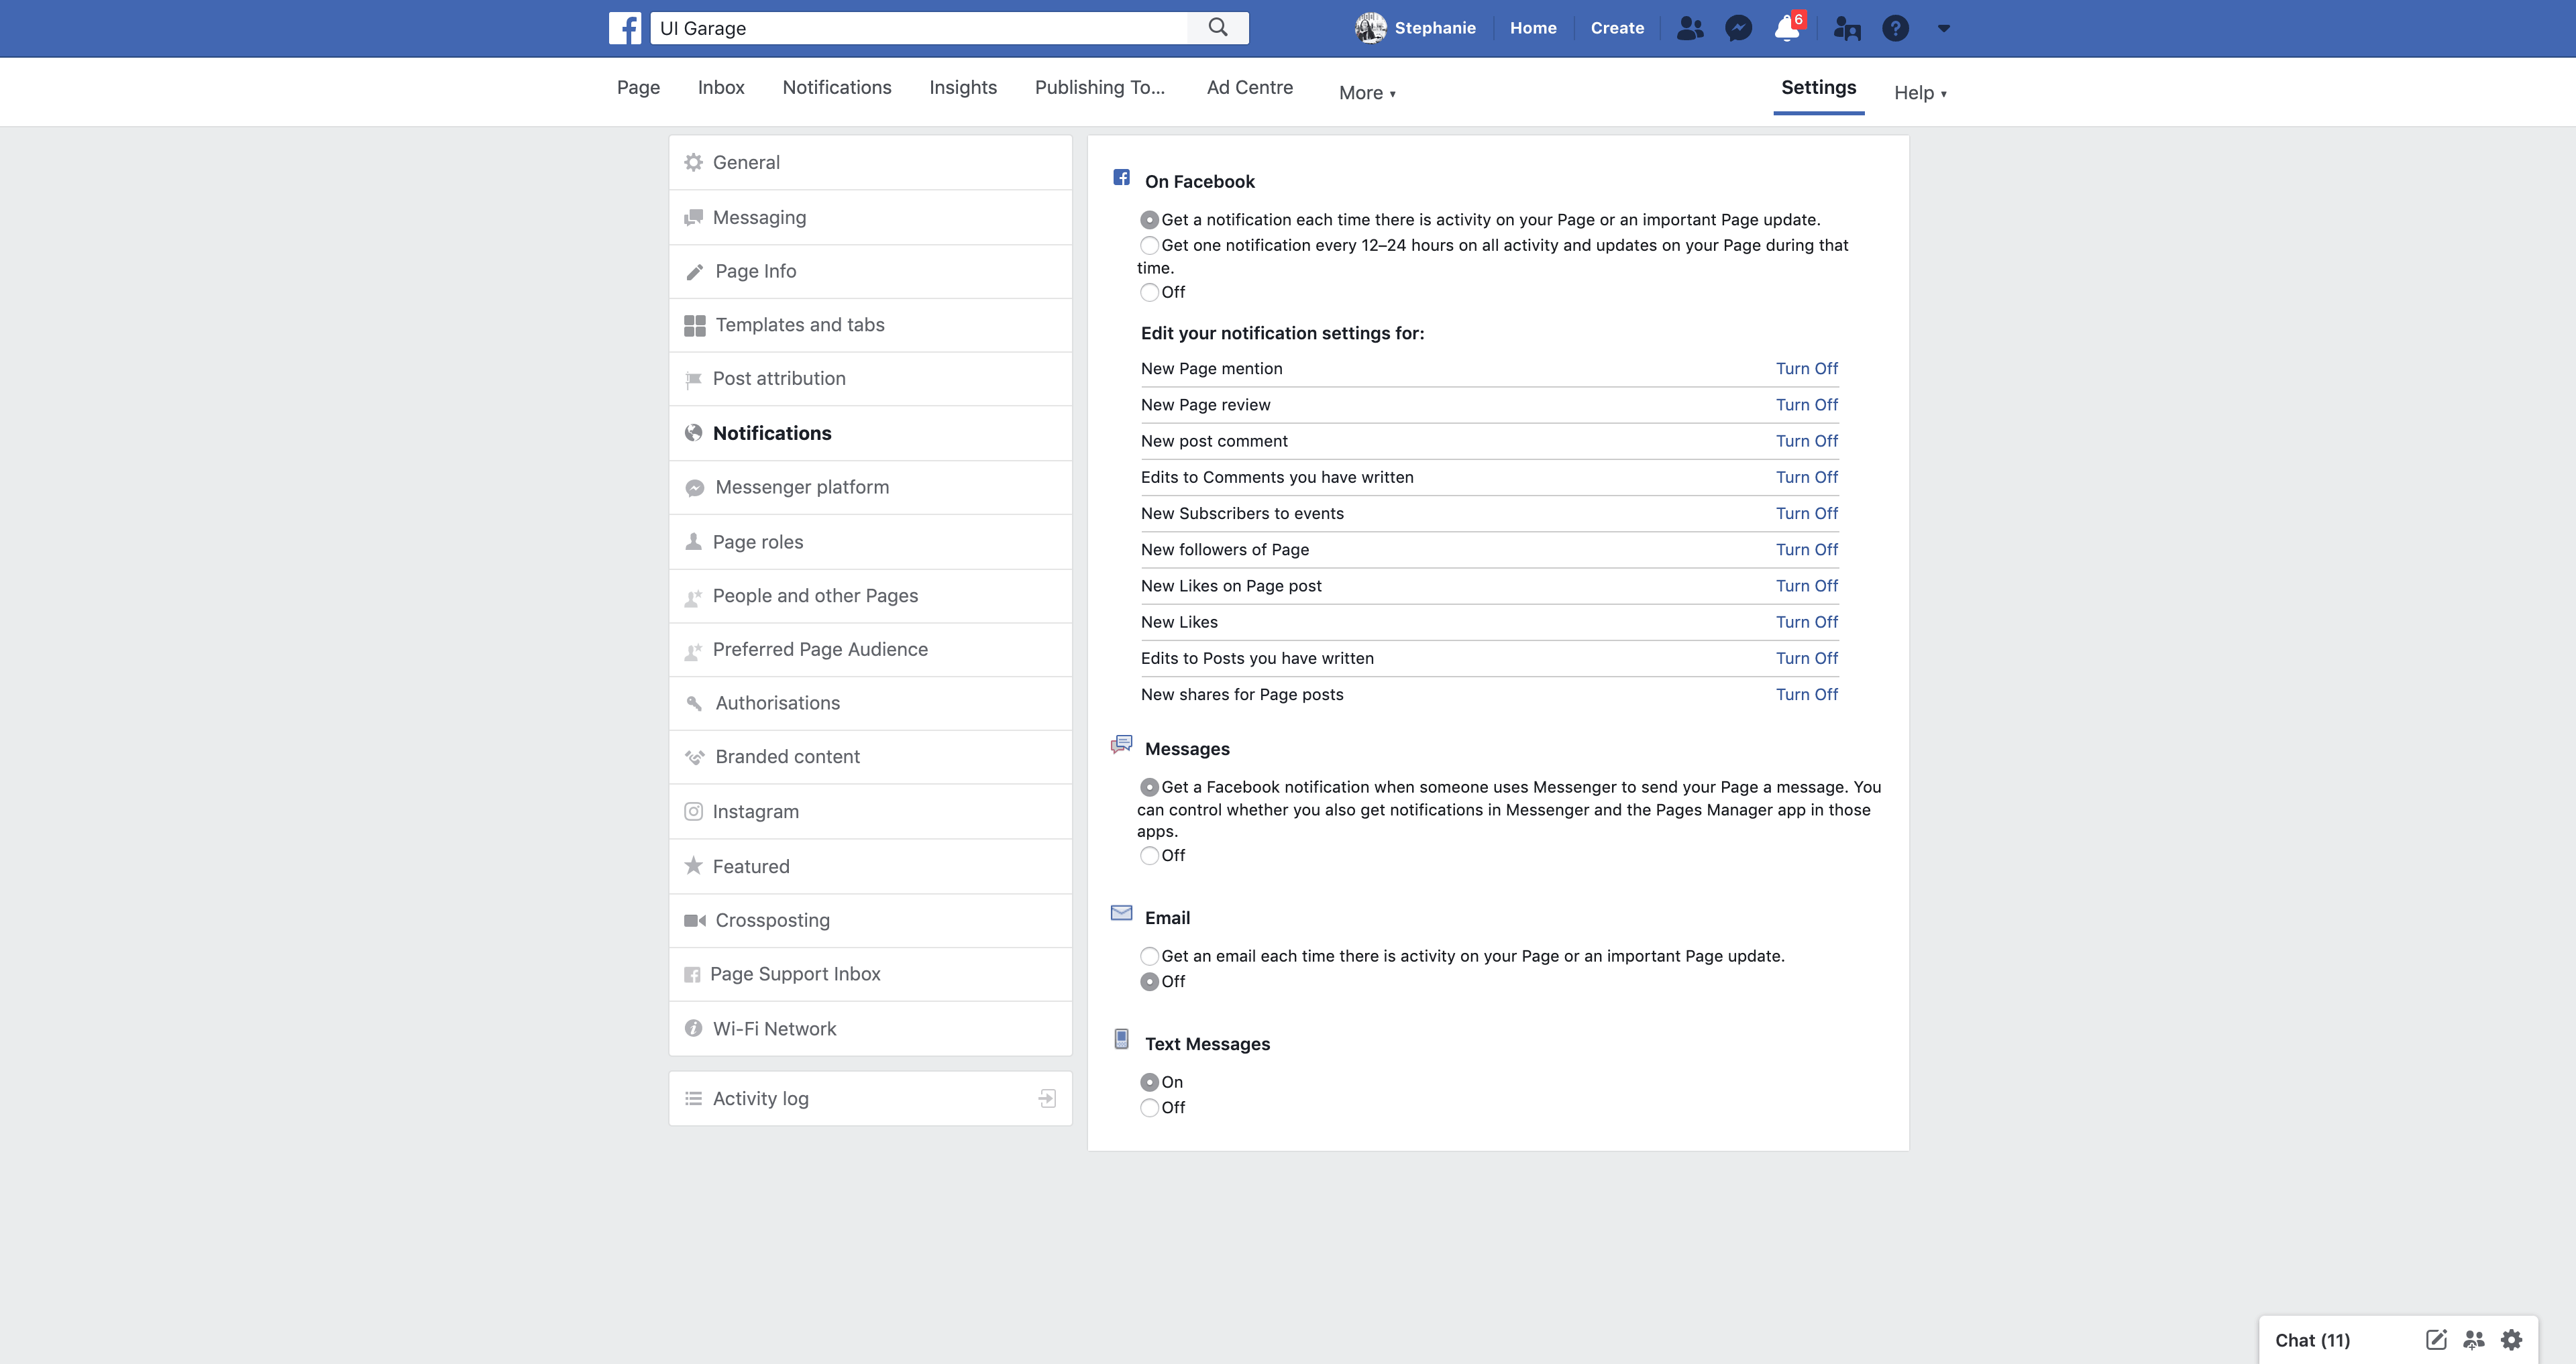 Page's Notifications by Facebook Settings  - UI Garage - The database of UI